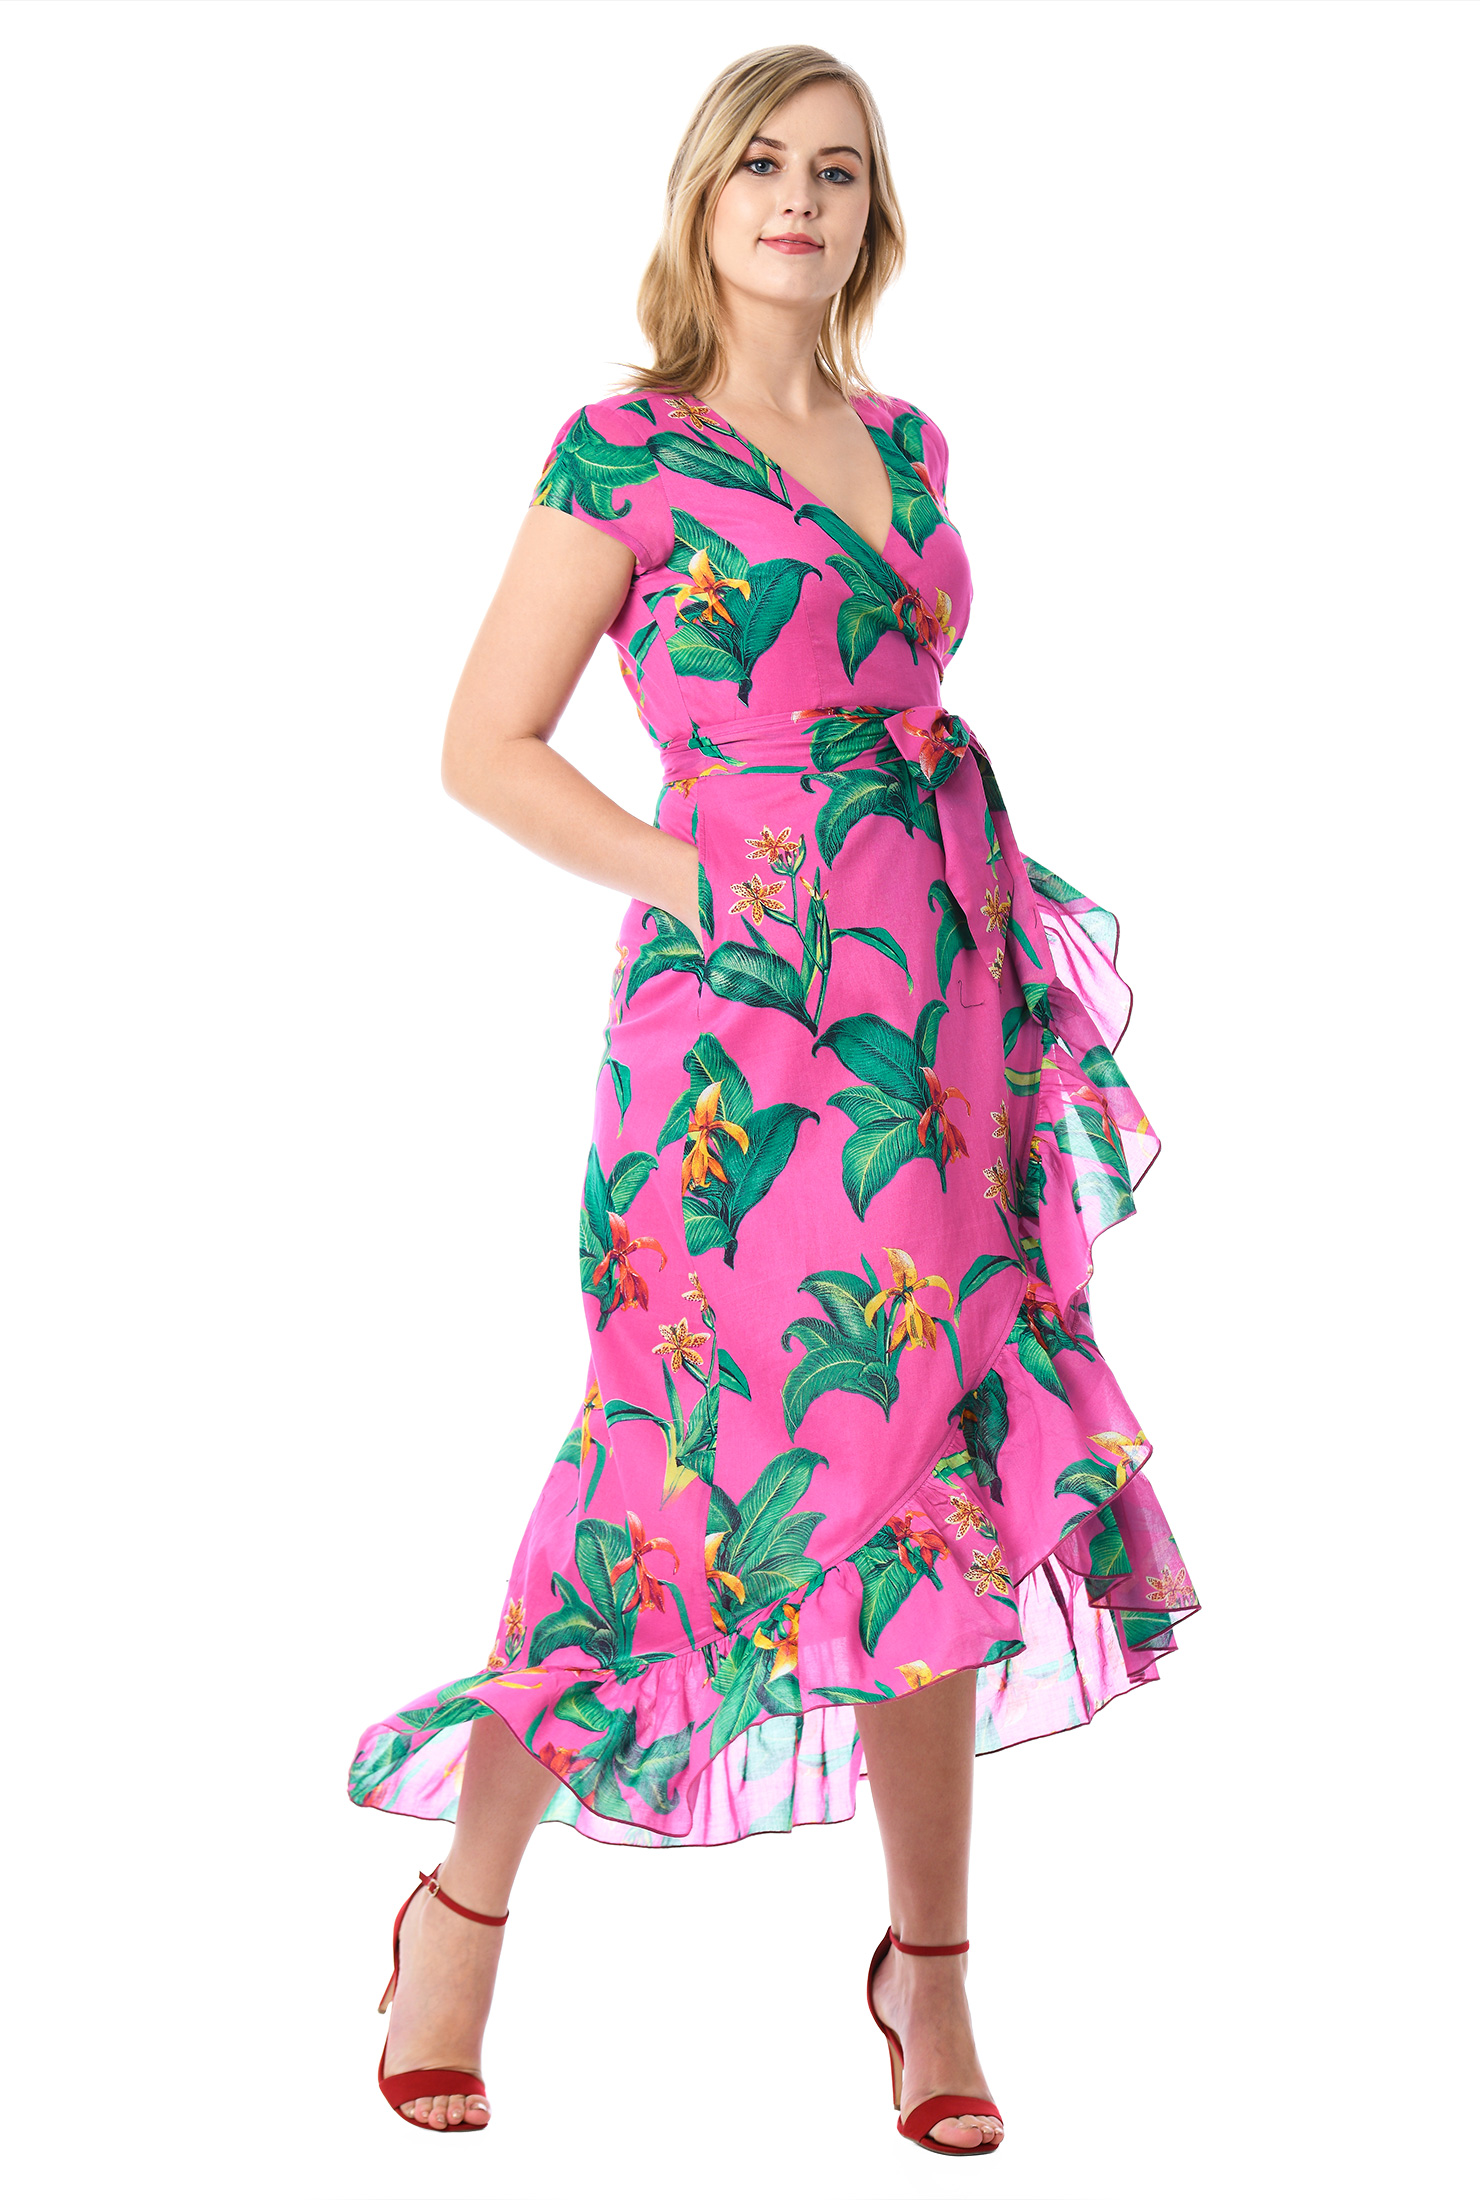 eShakti Women's Ruffle tropical print cotton voile wrap dress